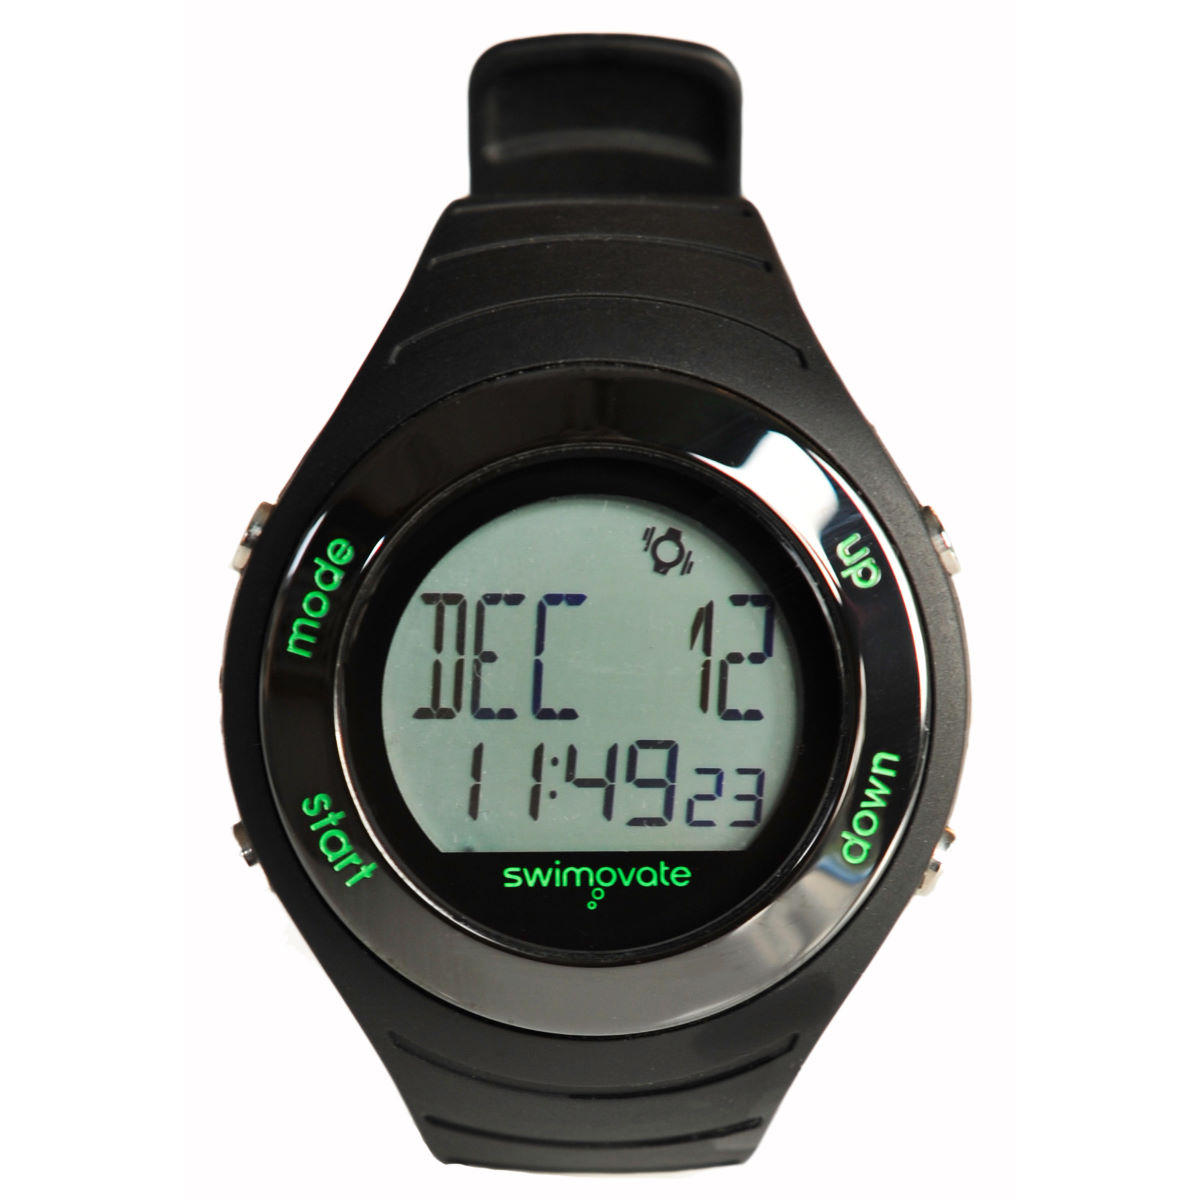 Montre Swimovate Pool Mate Live - Noir Compteurs GPS de running